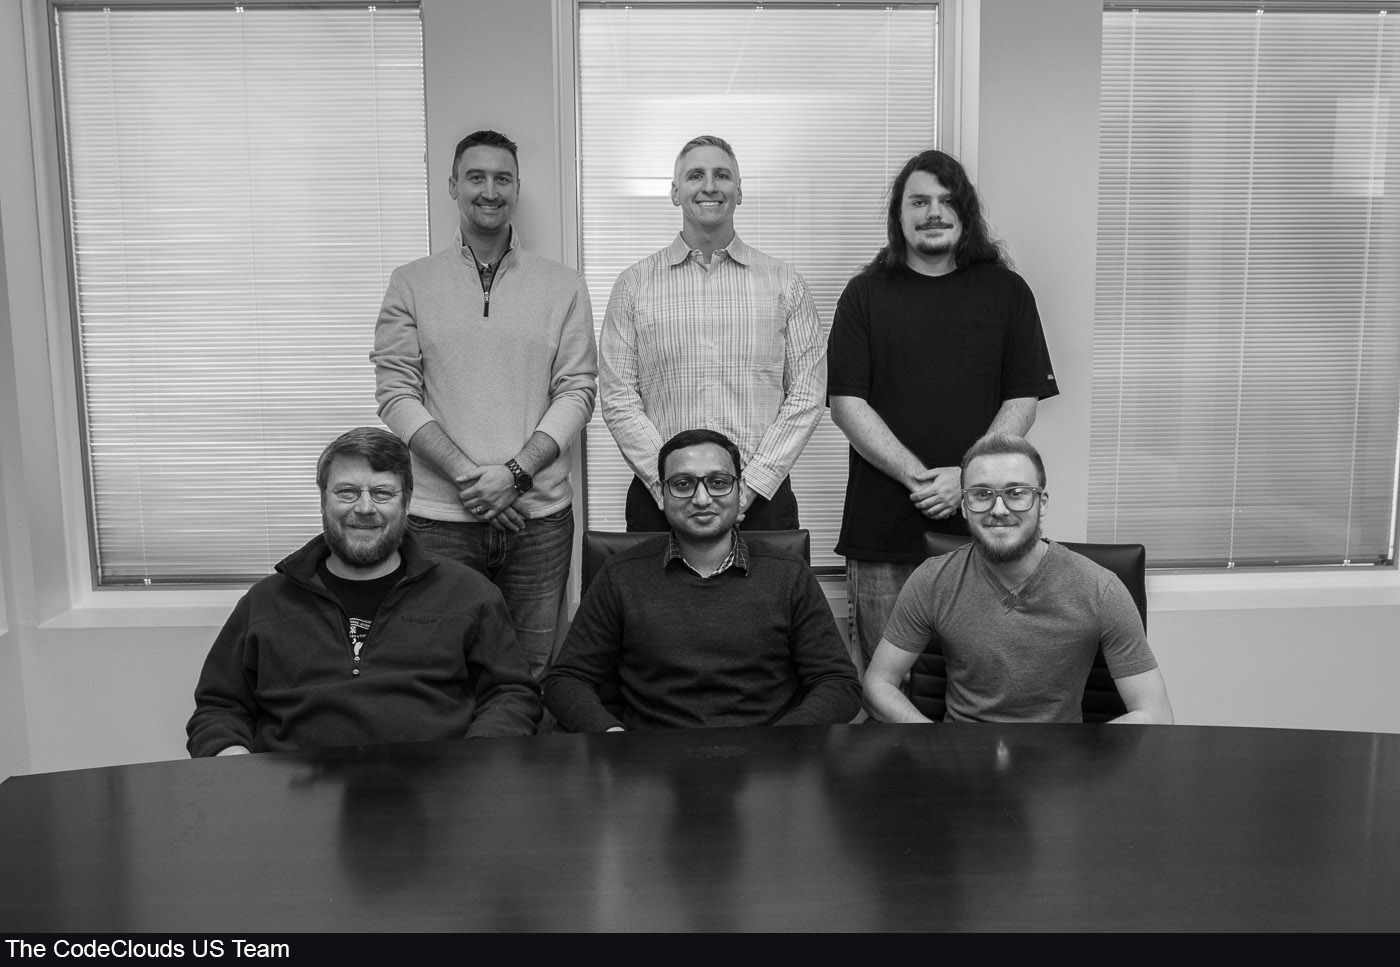 The CodeClouds US Team